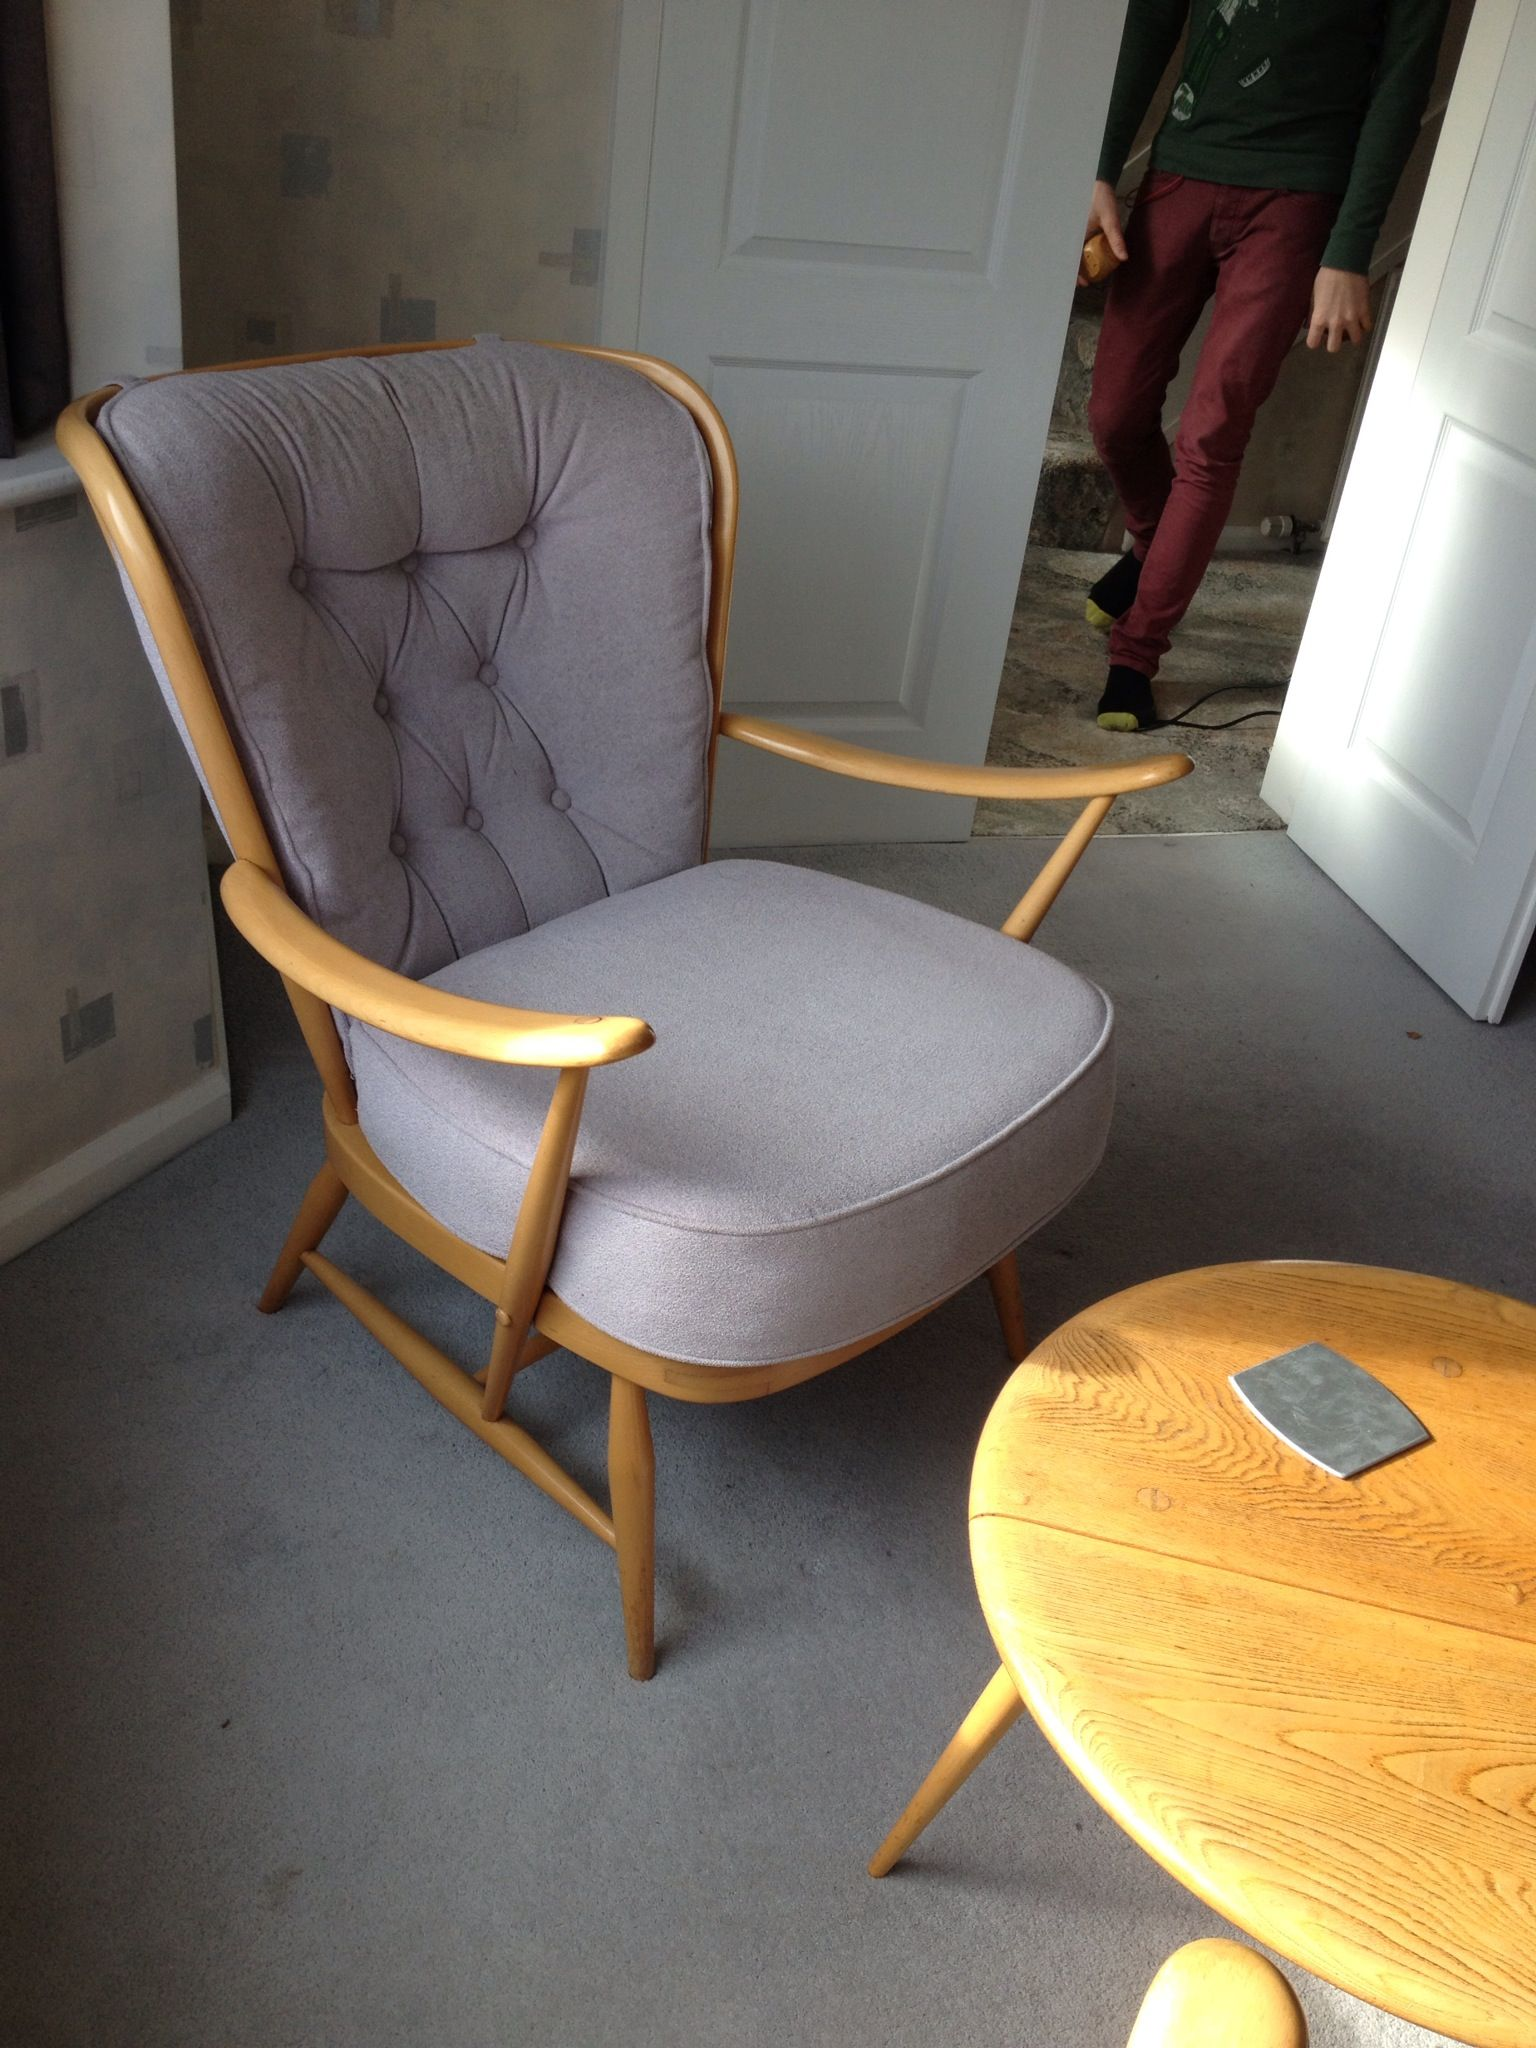 Upholstery ideas for rocking chair  Nursery Ideas  Pinterest